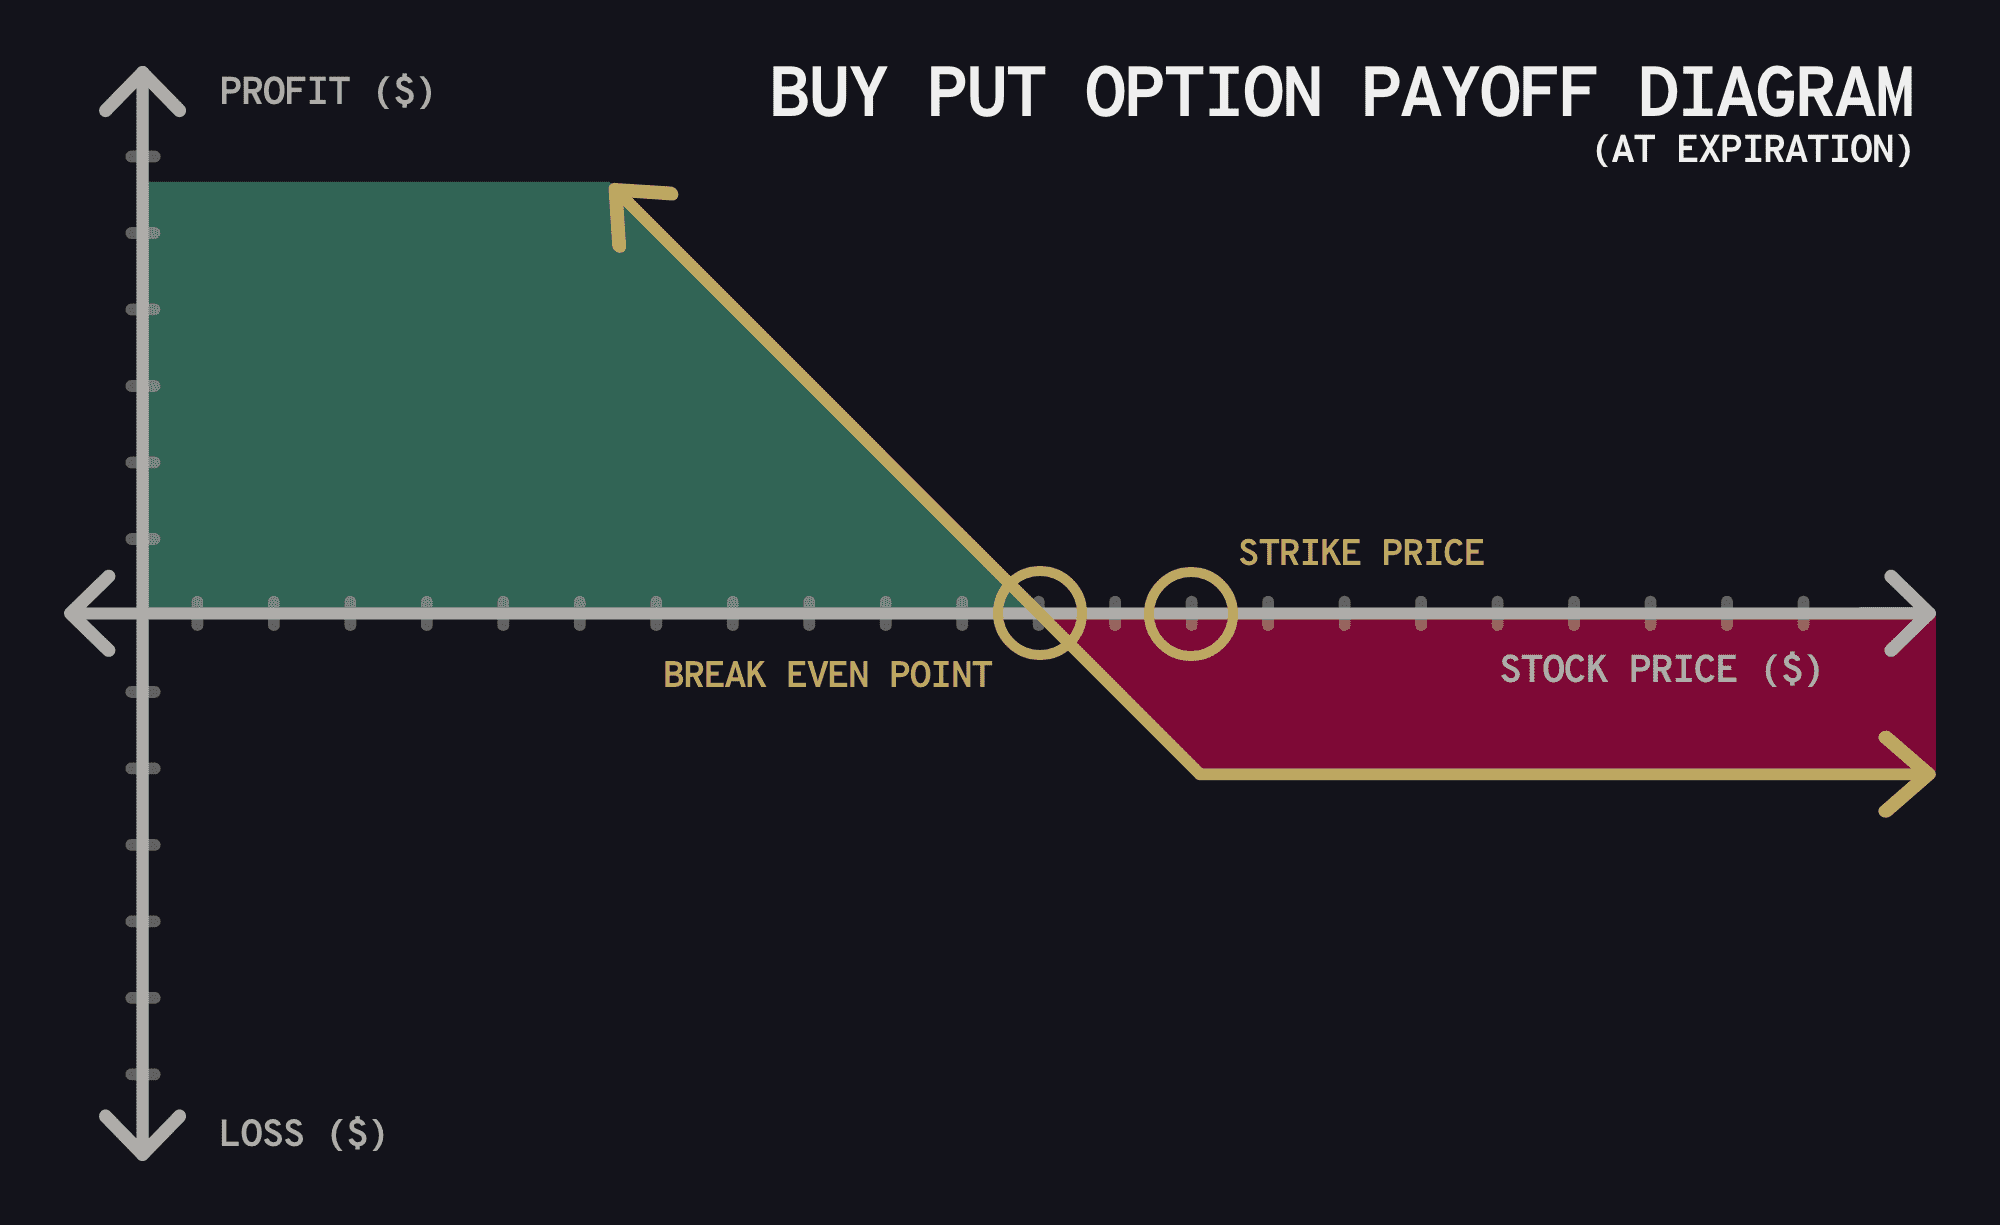 Payoff diagrams for buying and selling call and put option contracts